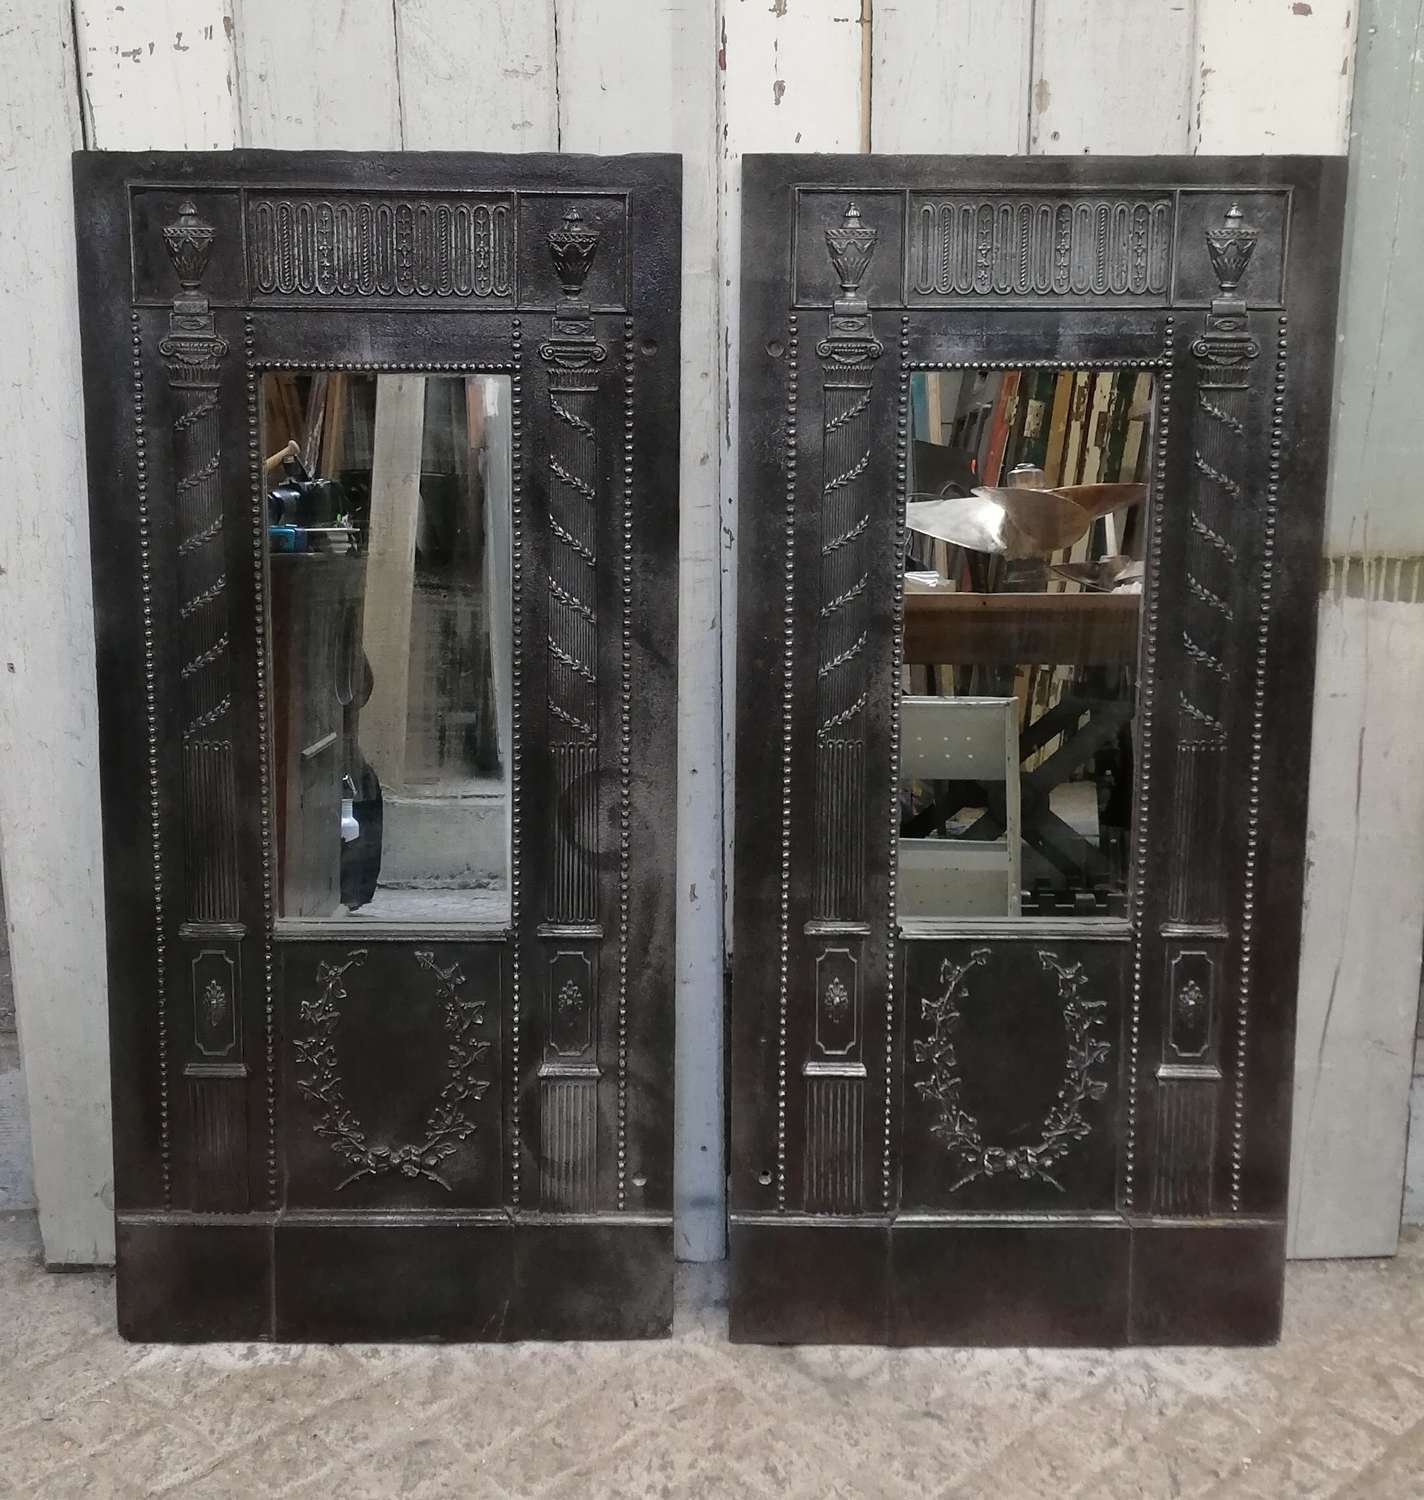 M1341 BEAUTIFUL CAST IRON PANEL MIRROR - 2 AVAILABLE SOLD SEPERATELY